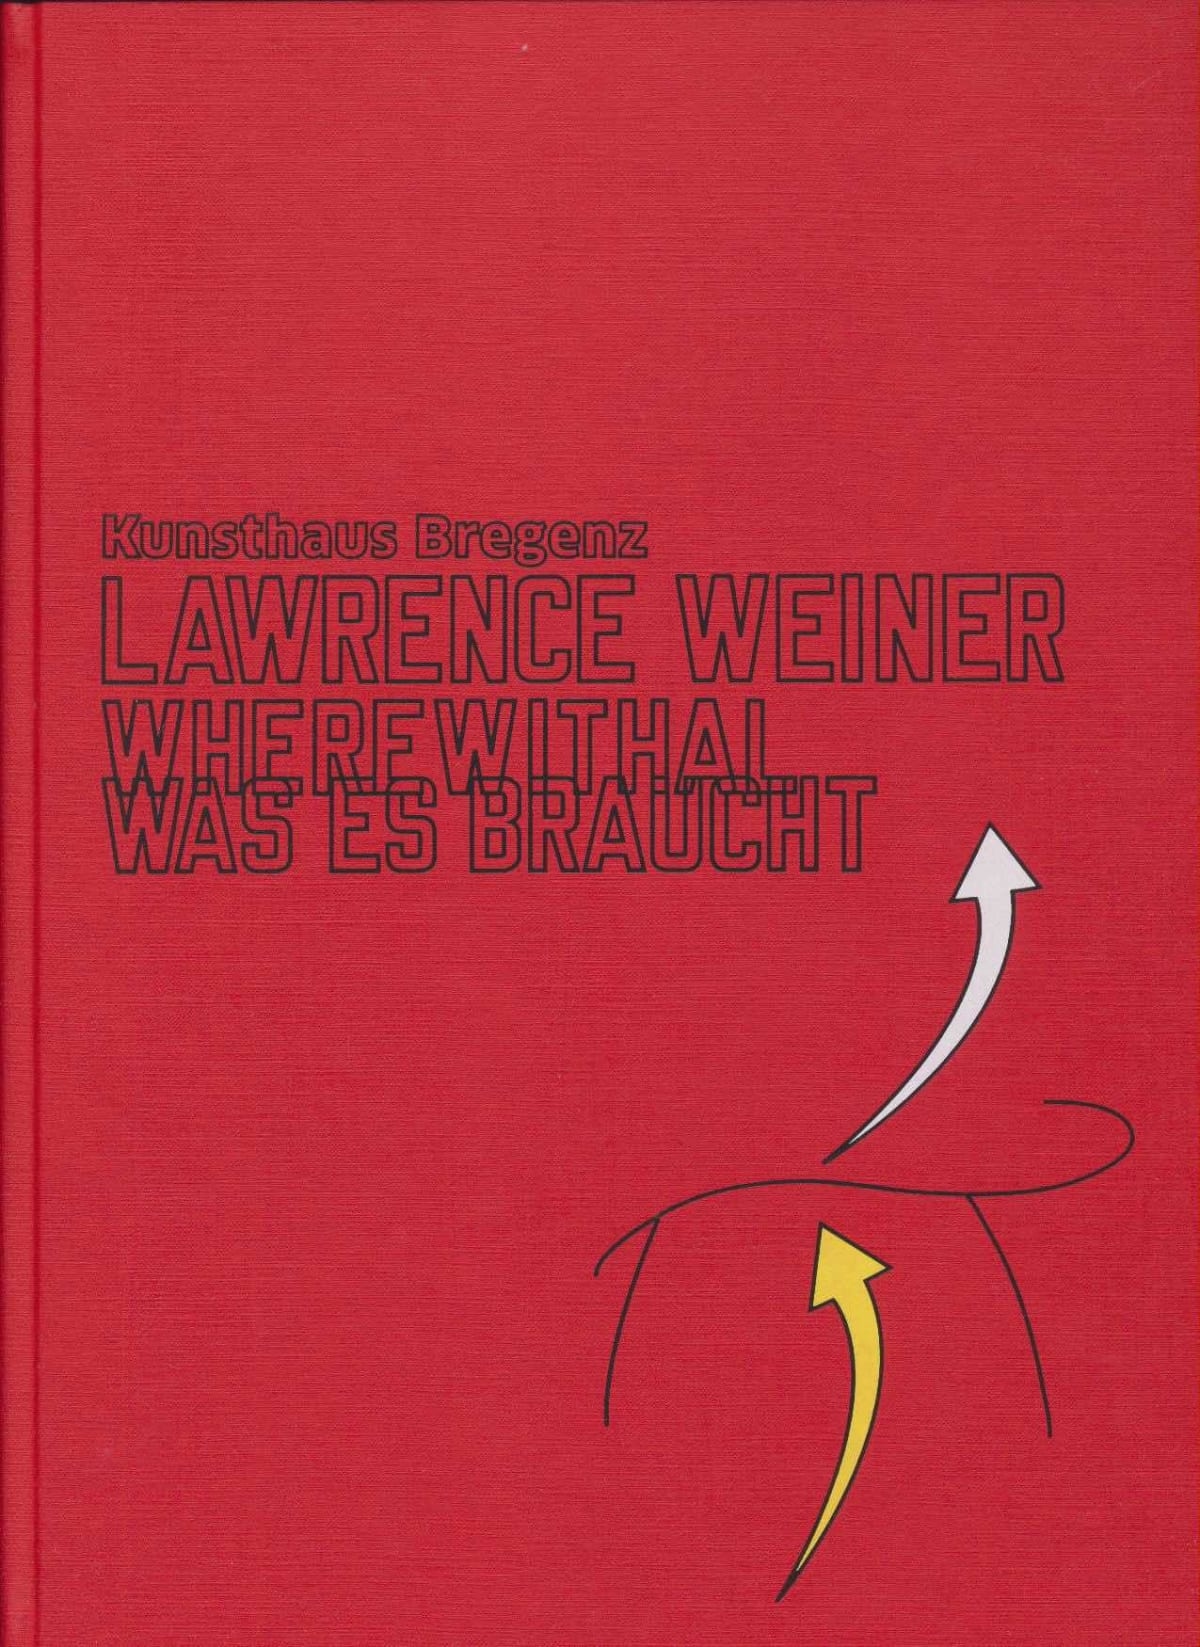 Lawrence_weiner_catalogue_WHEREWITHAL_2017